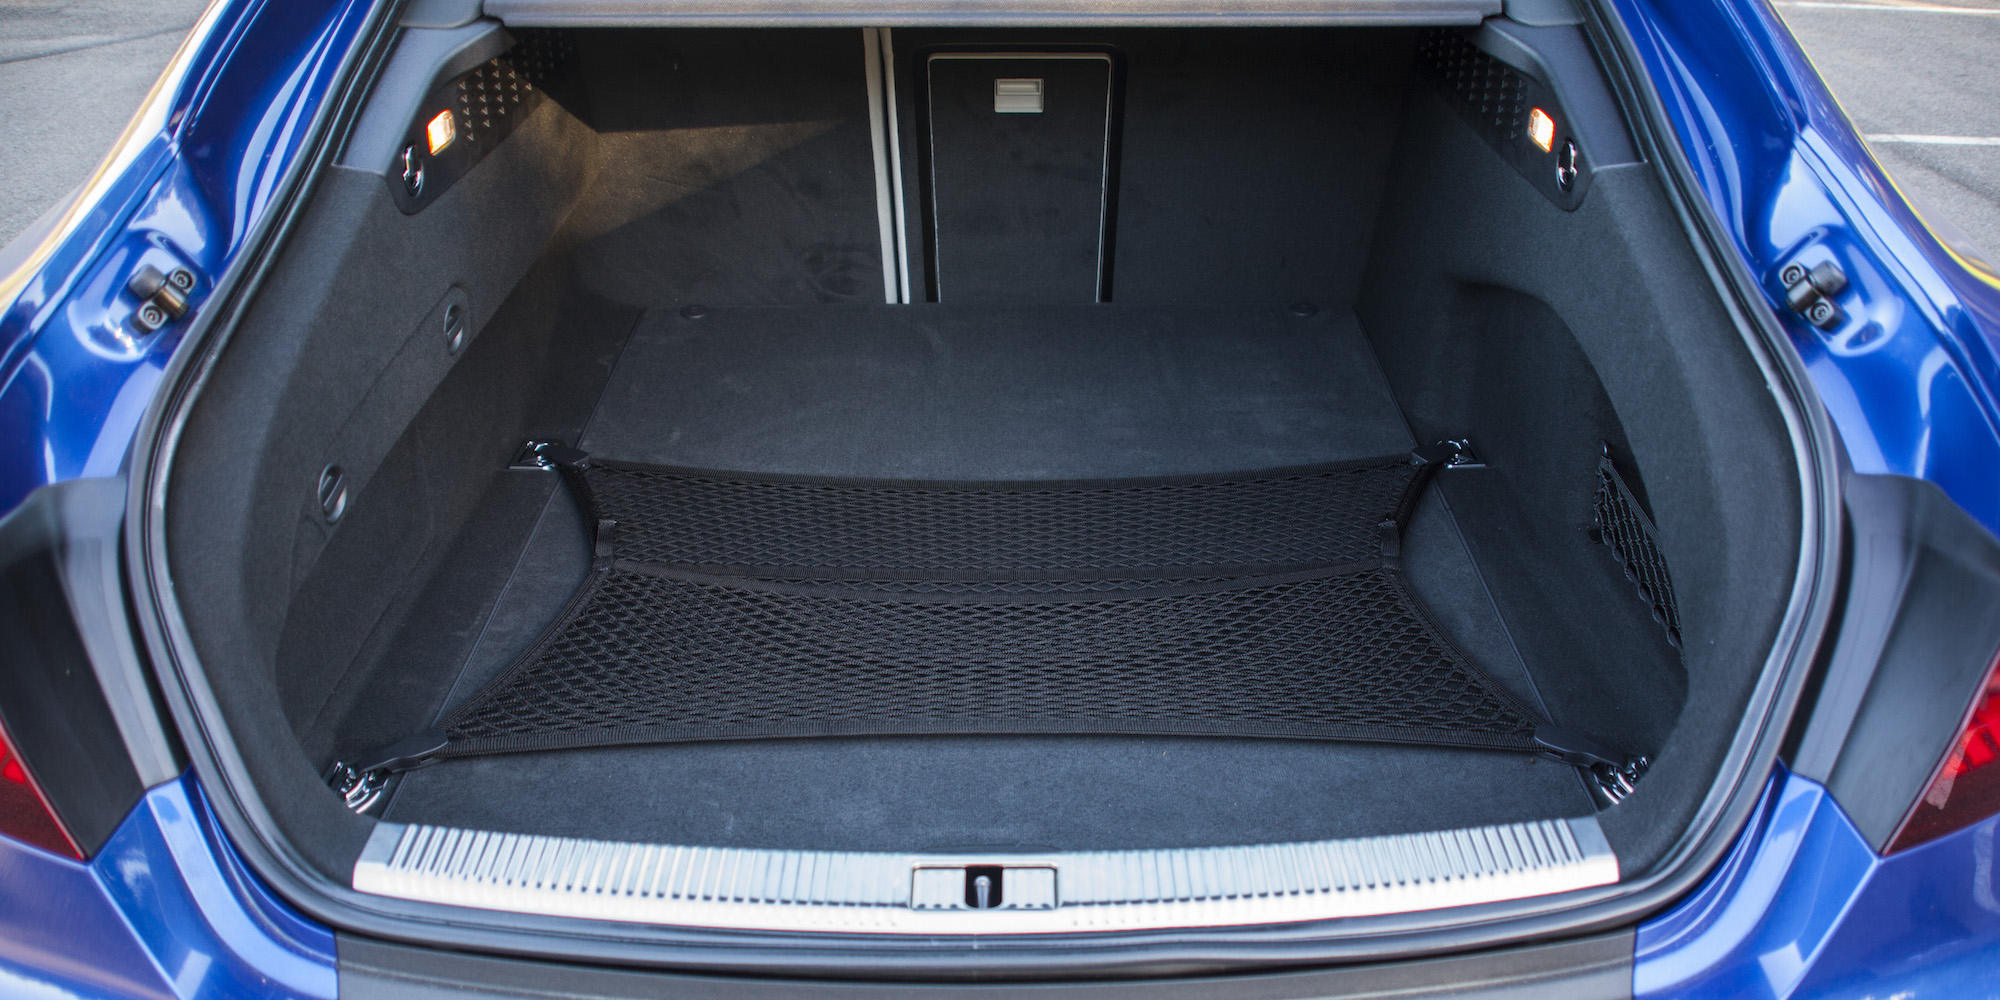 2016 Audi S7 Trunk Space (View 11 of 30)